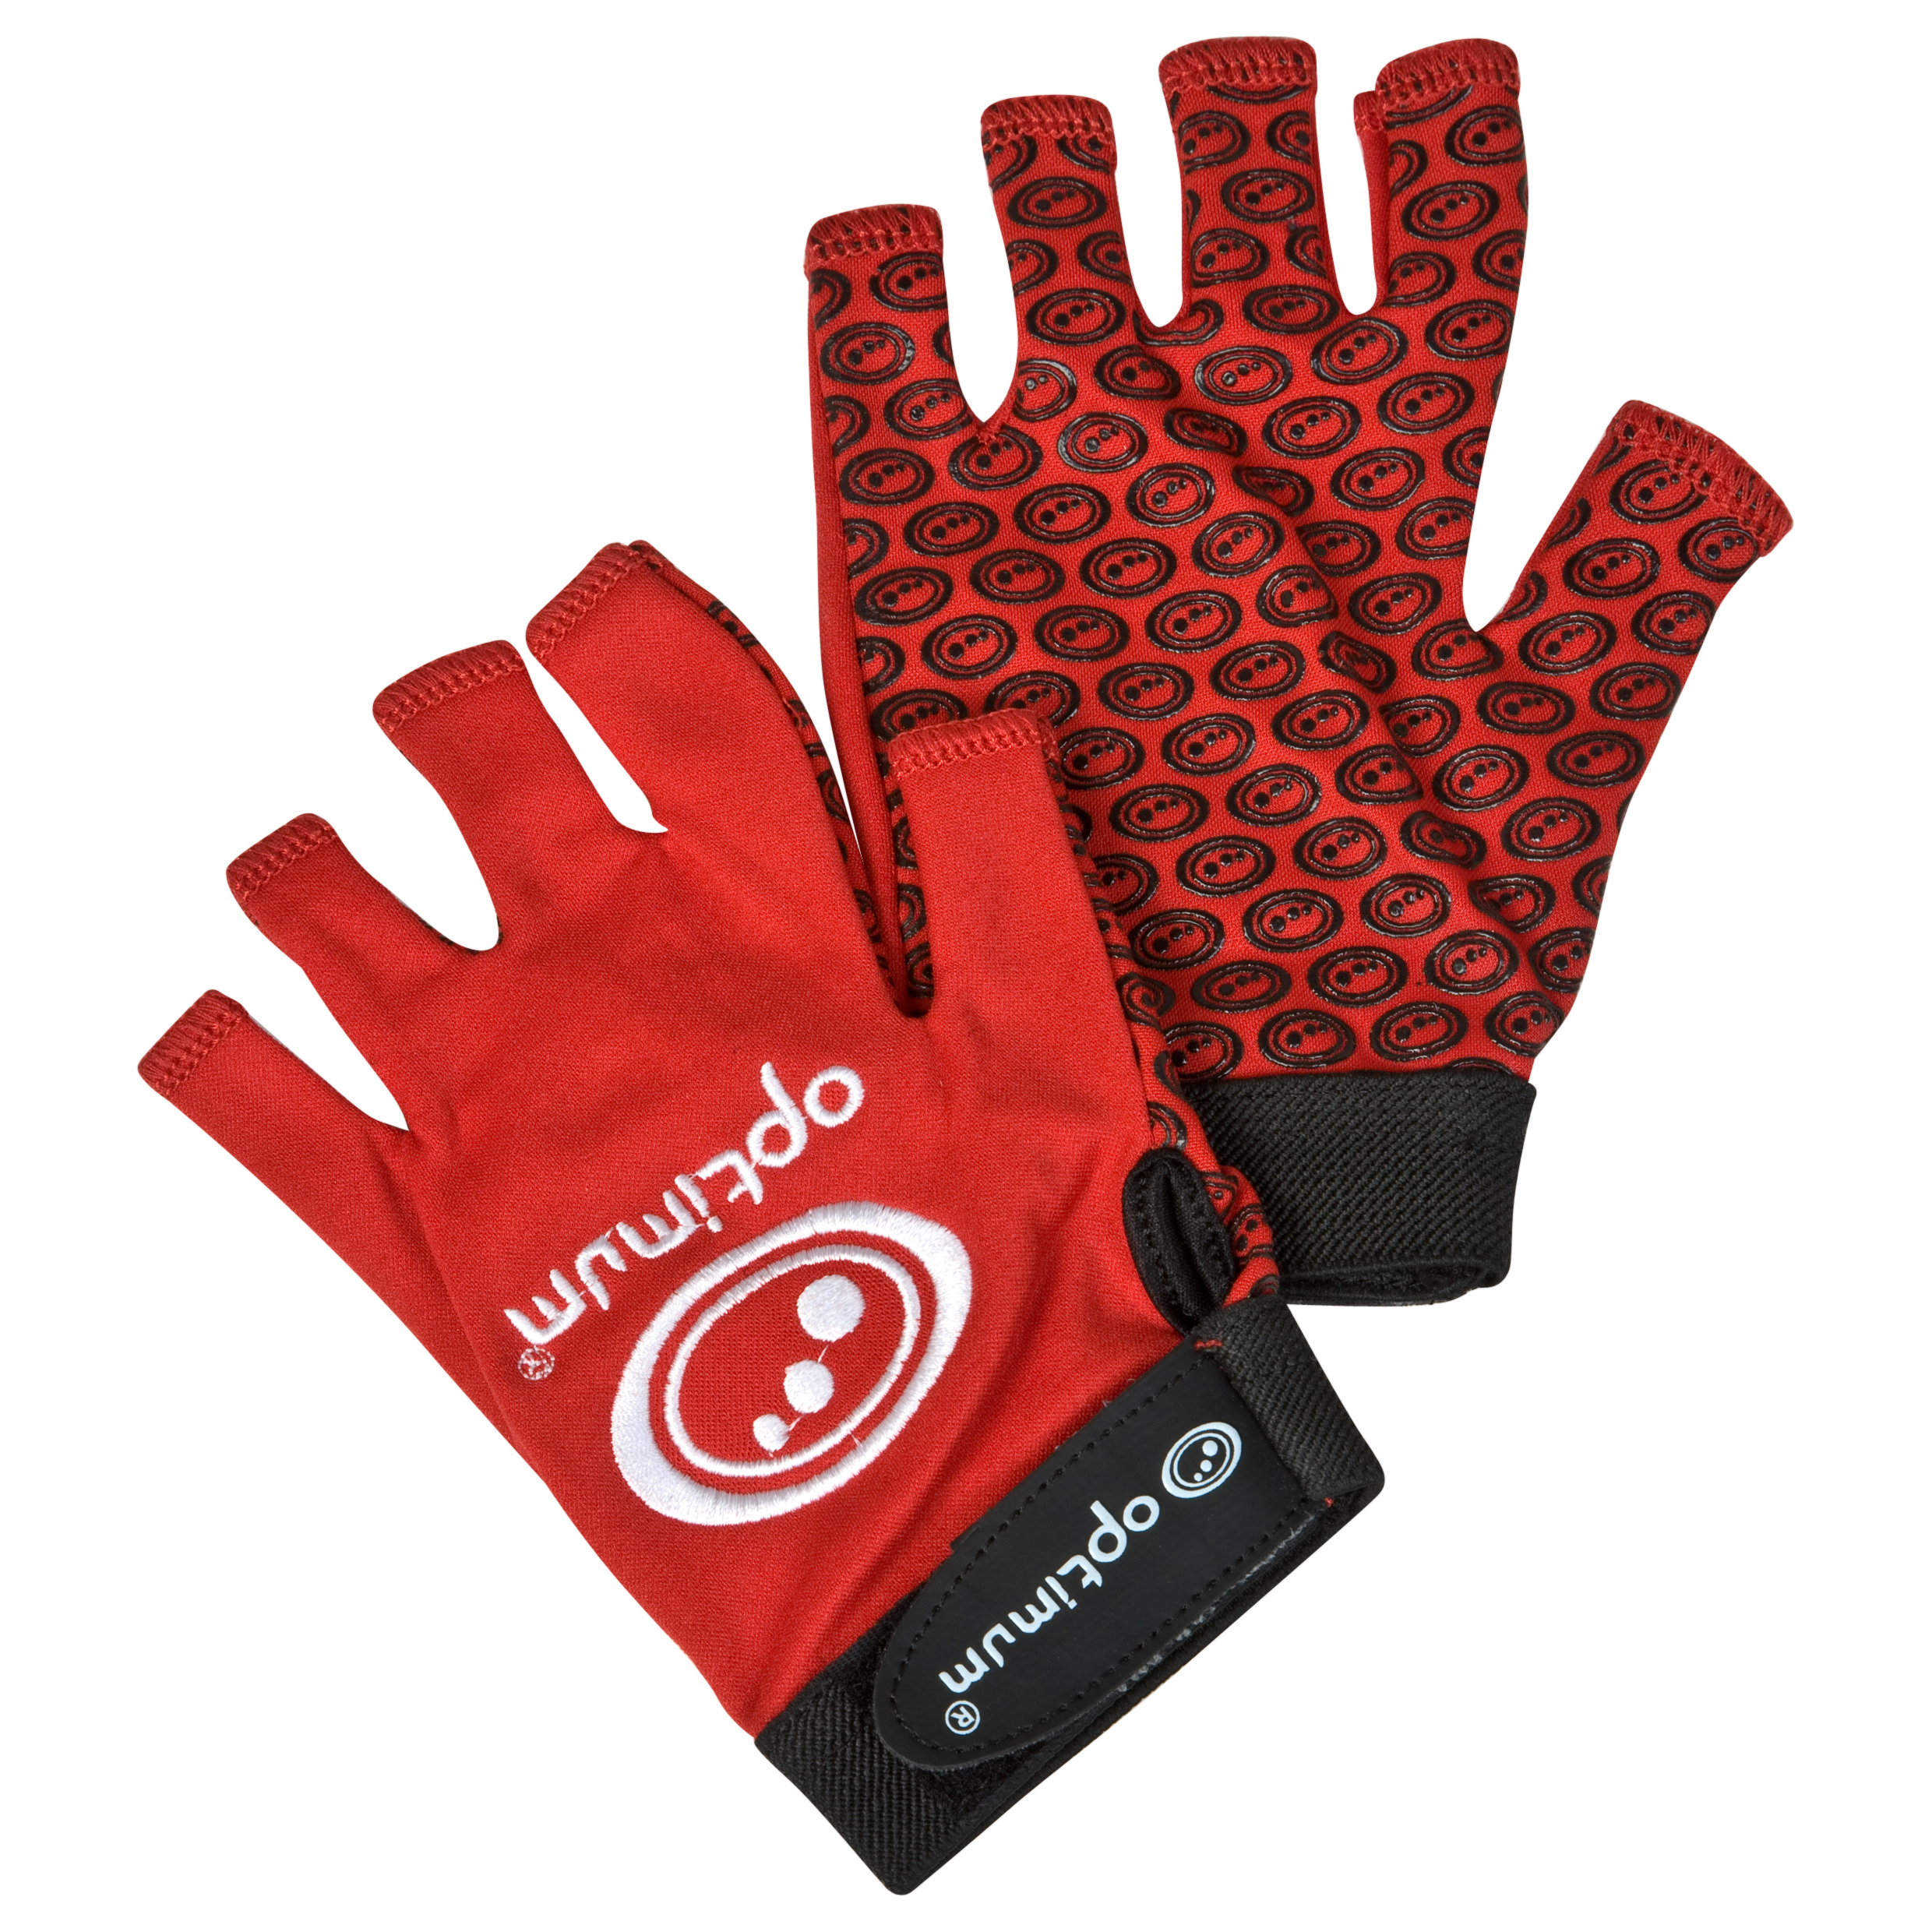 Optimum Stick Mitts - Red - Boys